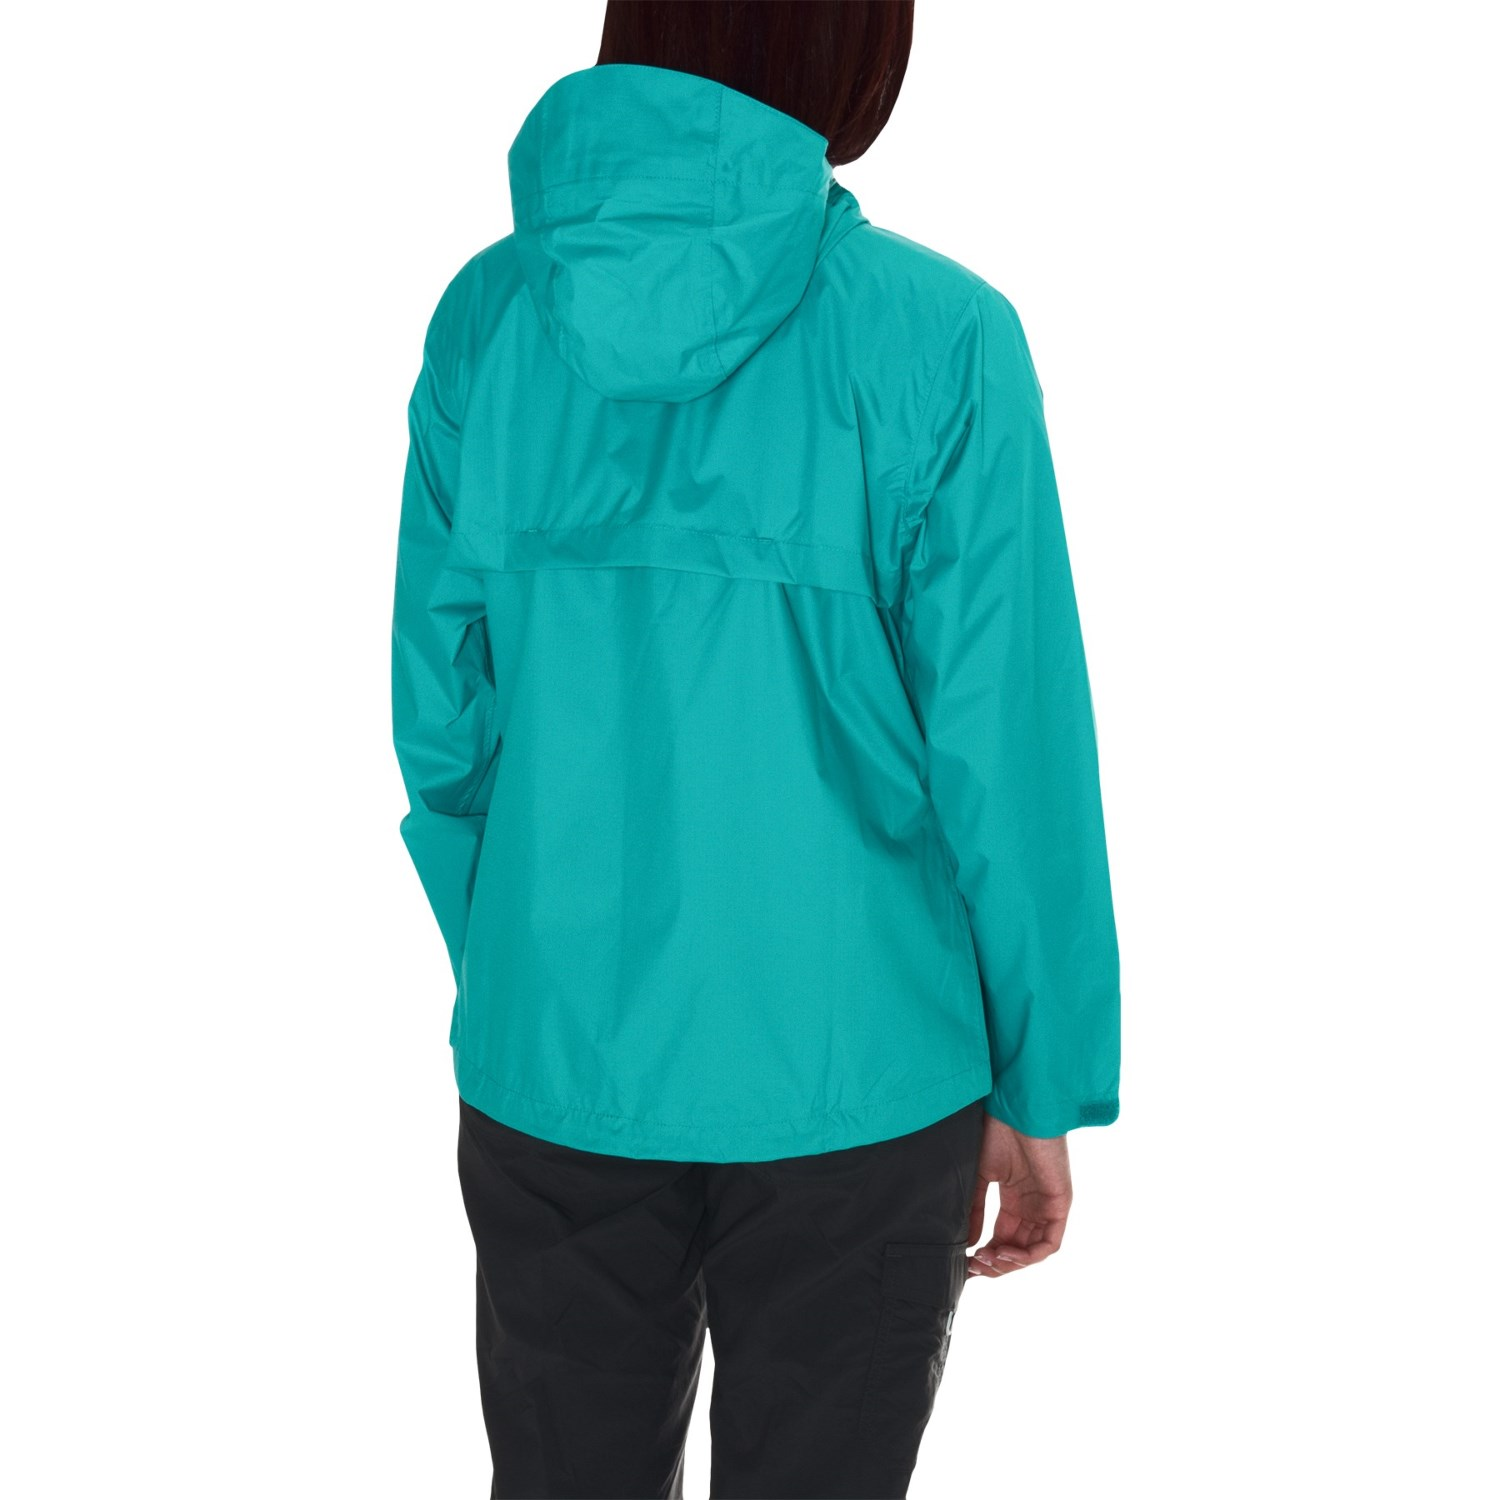 Discount Rain Jackets. northtercessbudh.cf has the largest selection of Discount Rain Jackets and Clothing & Accessories on the web. Orders shipped within 24 hrs M-F. 29 years of .